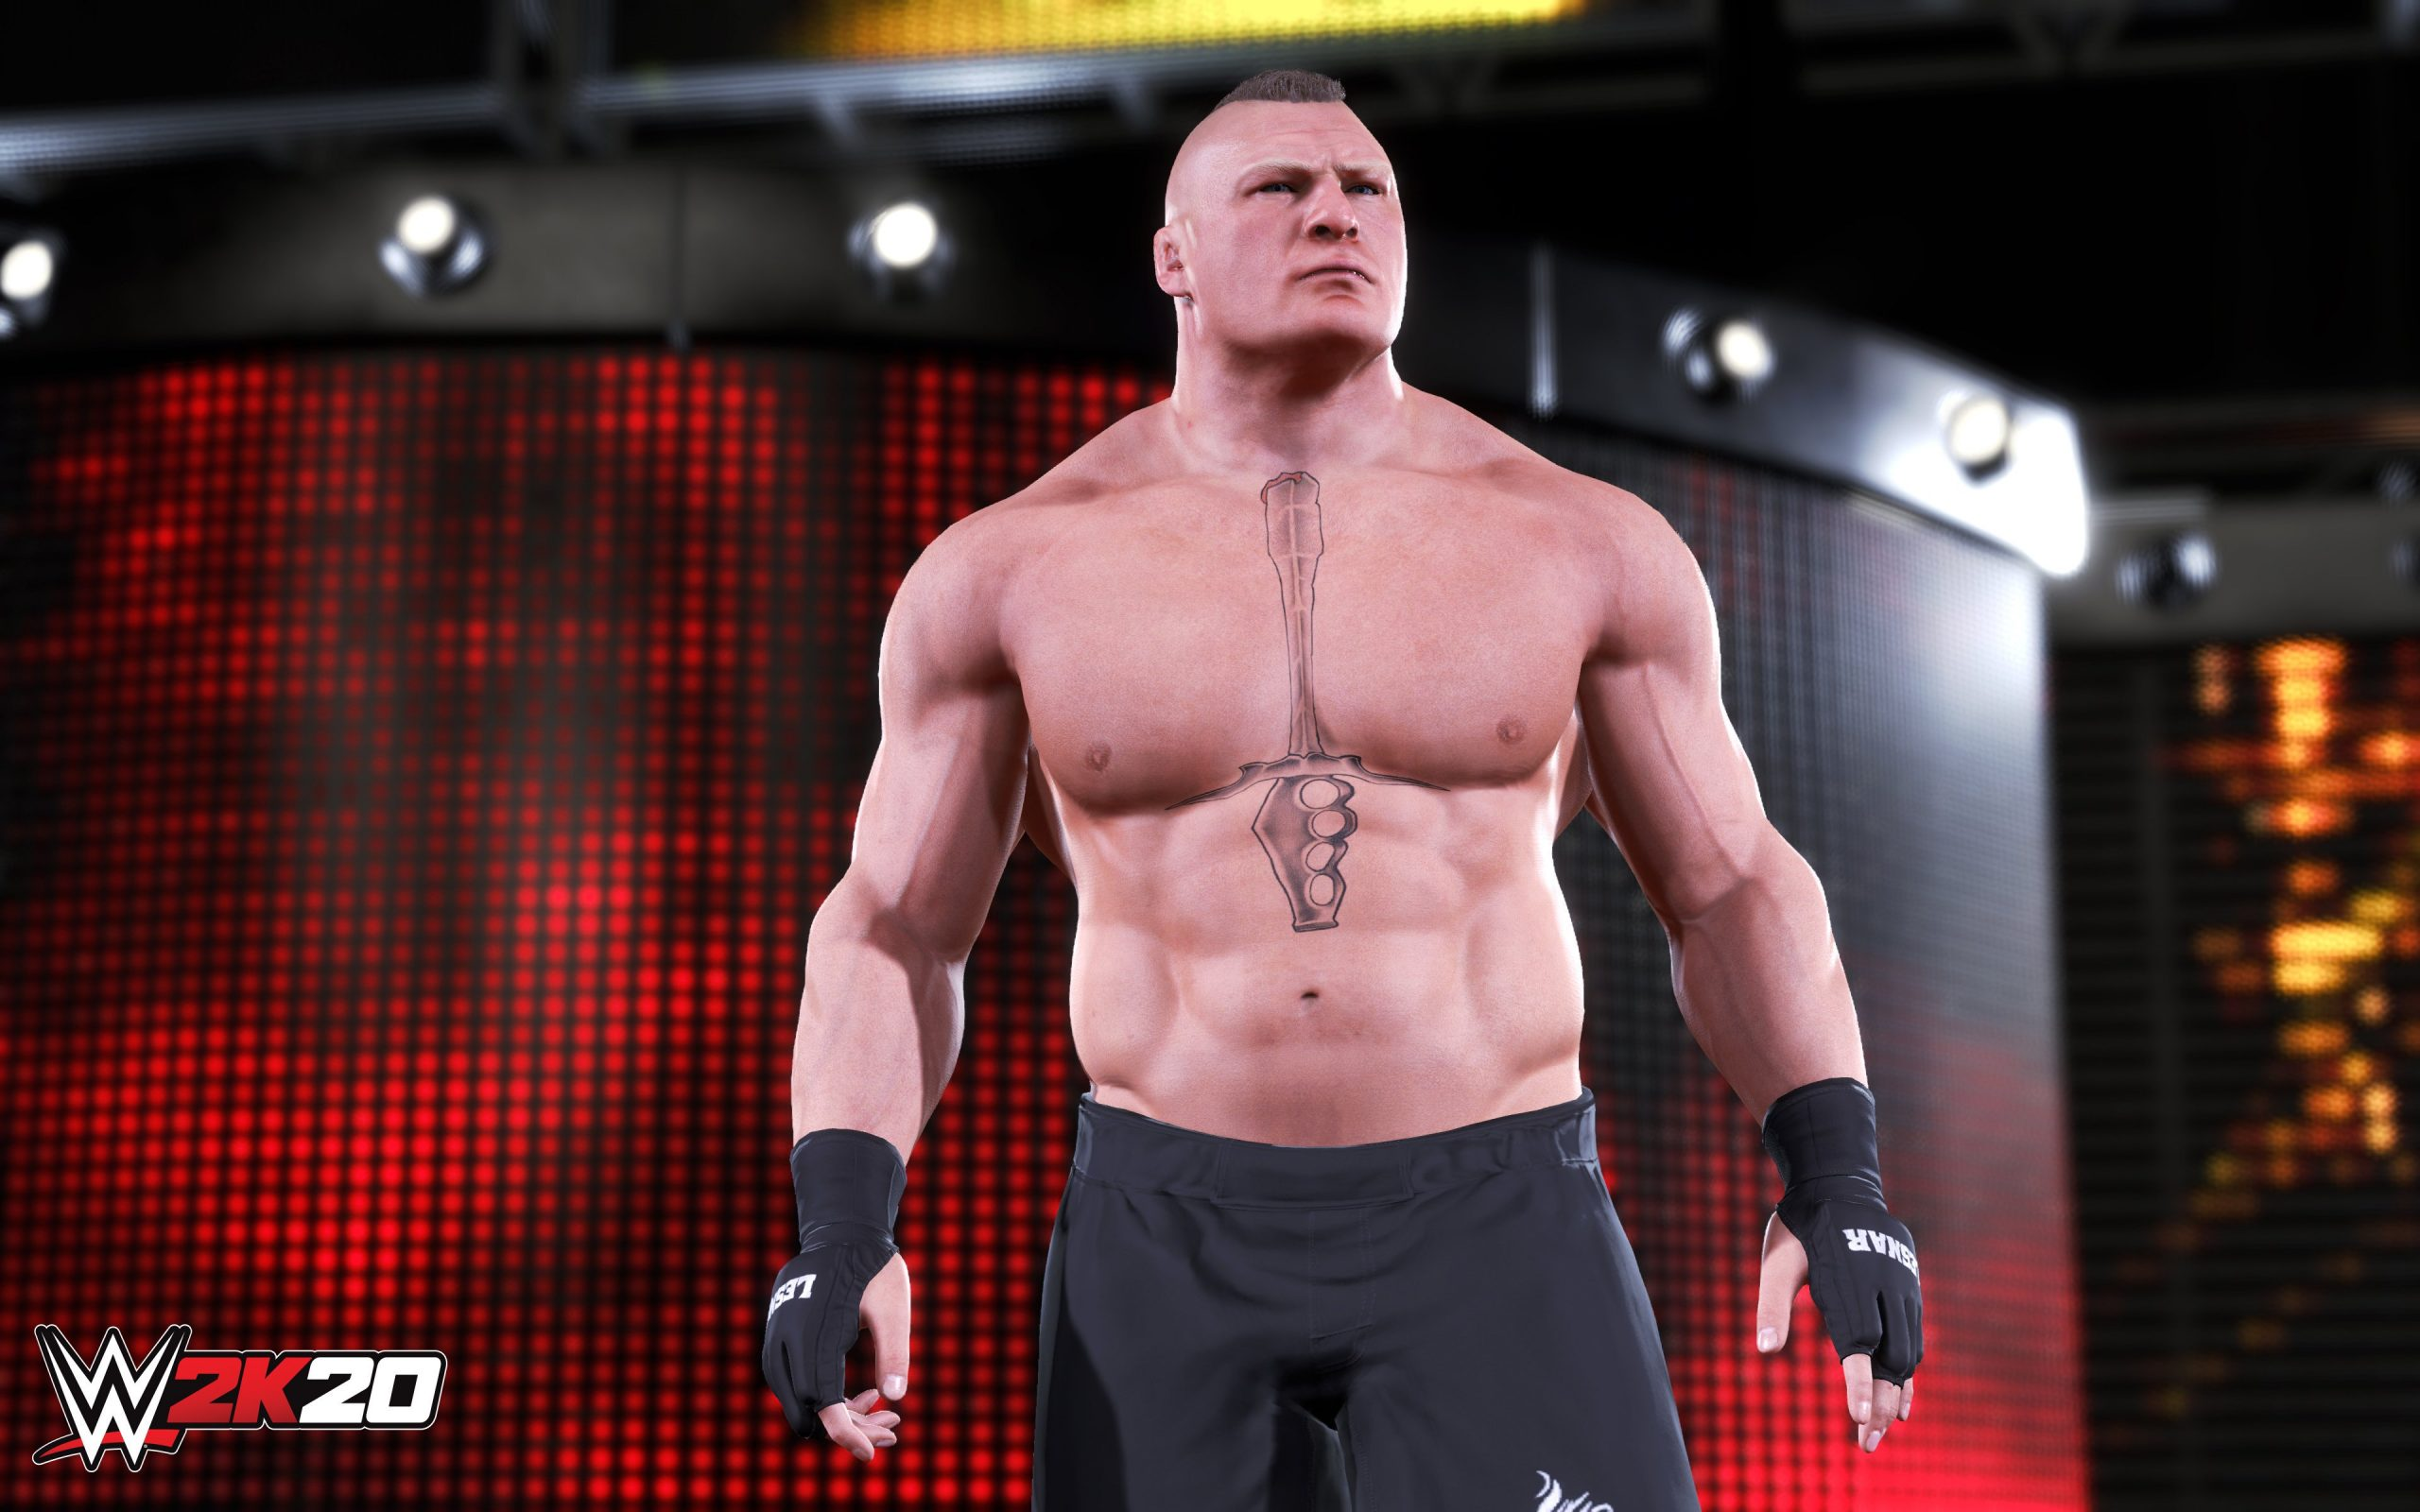 2K Games announces patch to address WWE 2K20's many issues